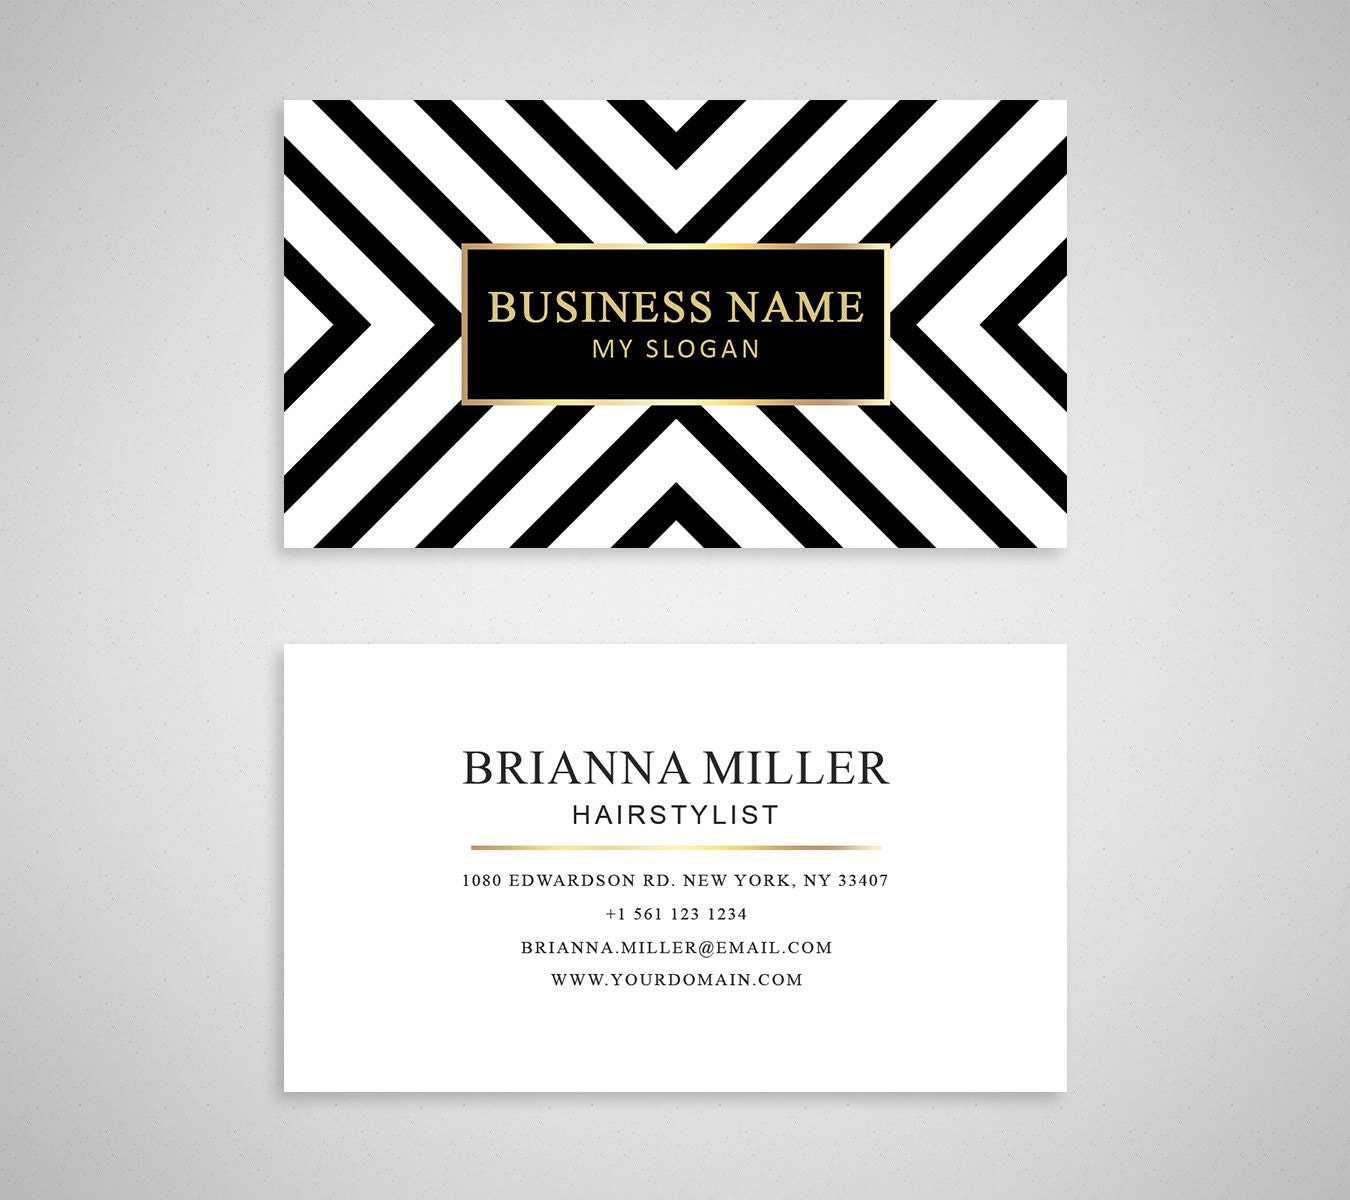 Business card template 04 2 sided business card by for 2 sided business cards templates free